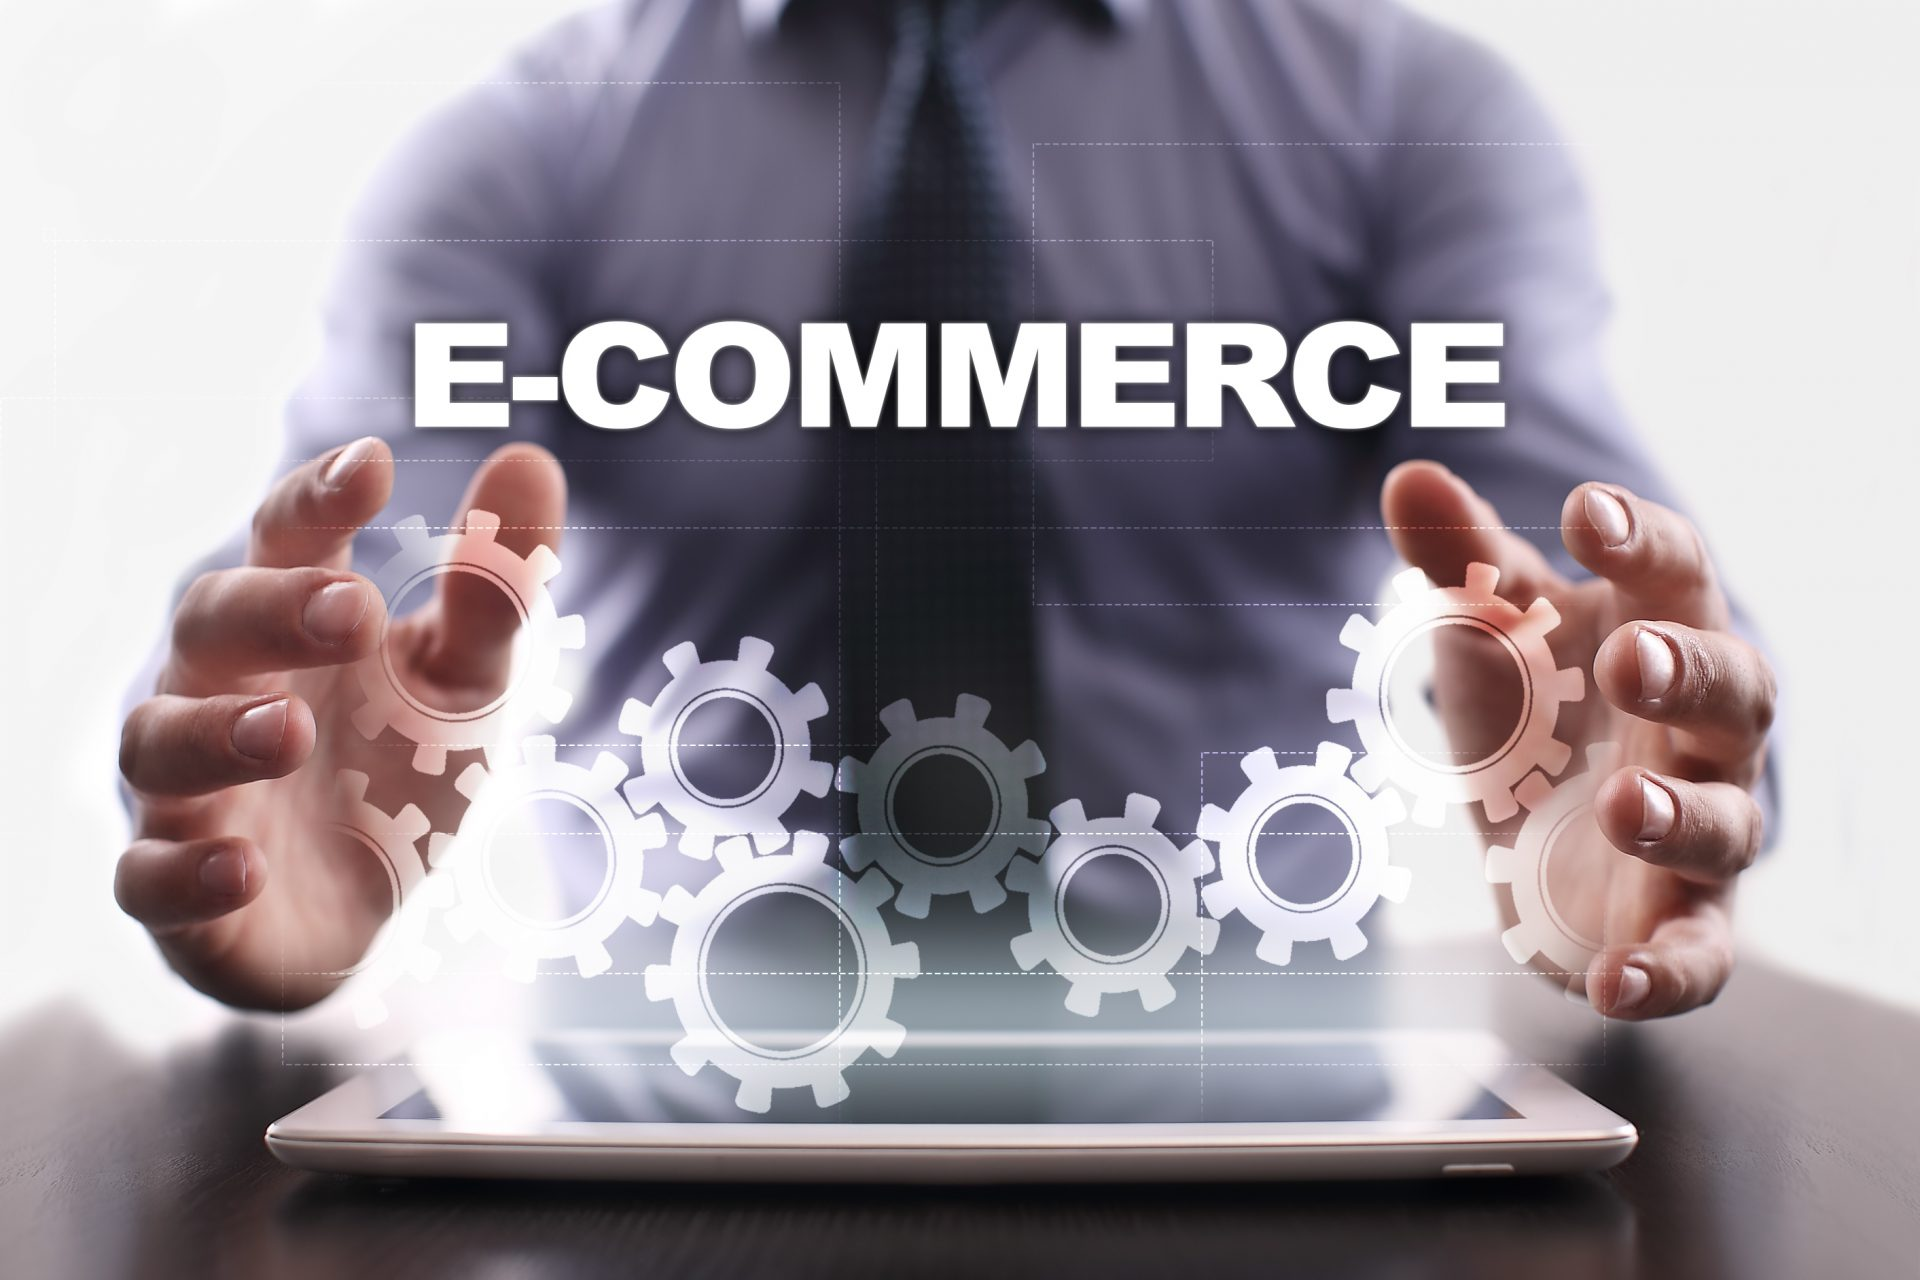 Localization in e-commerce